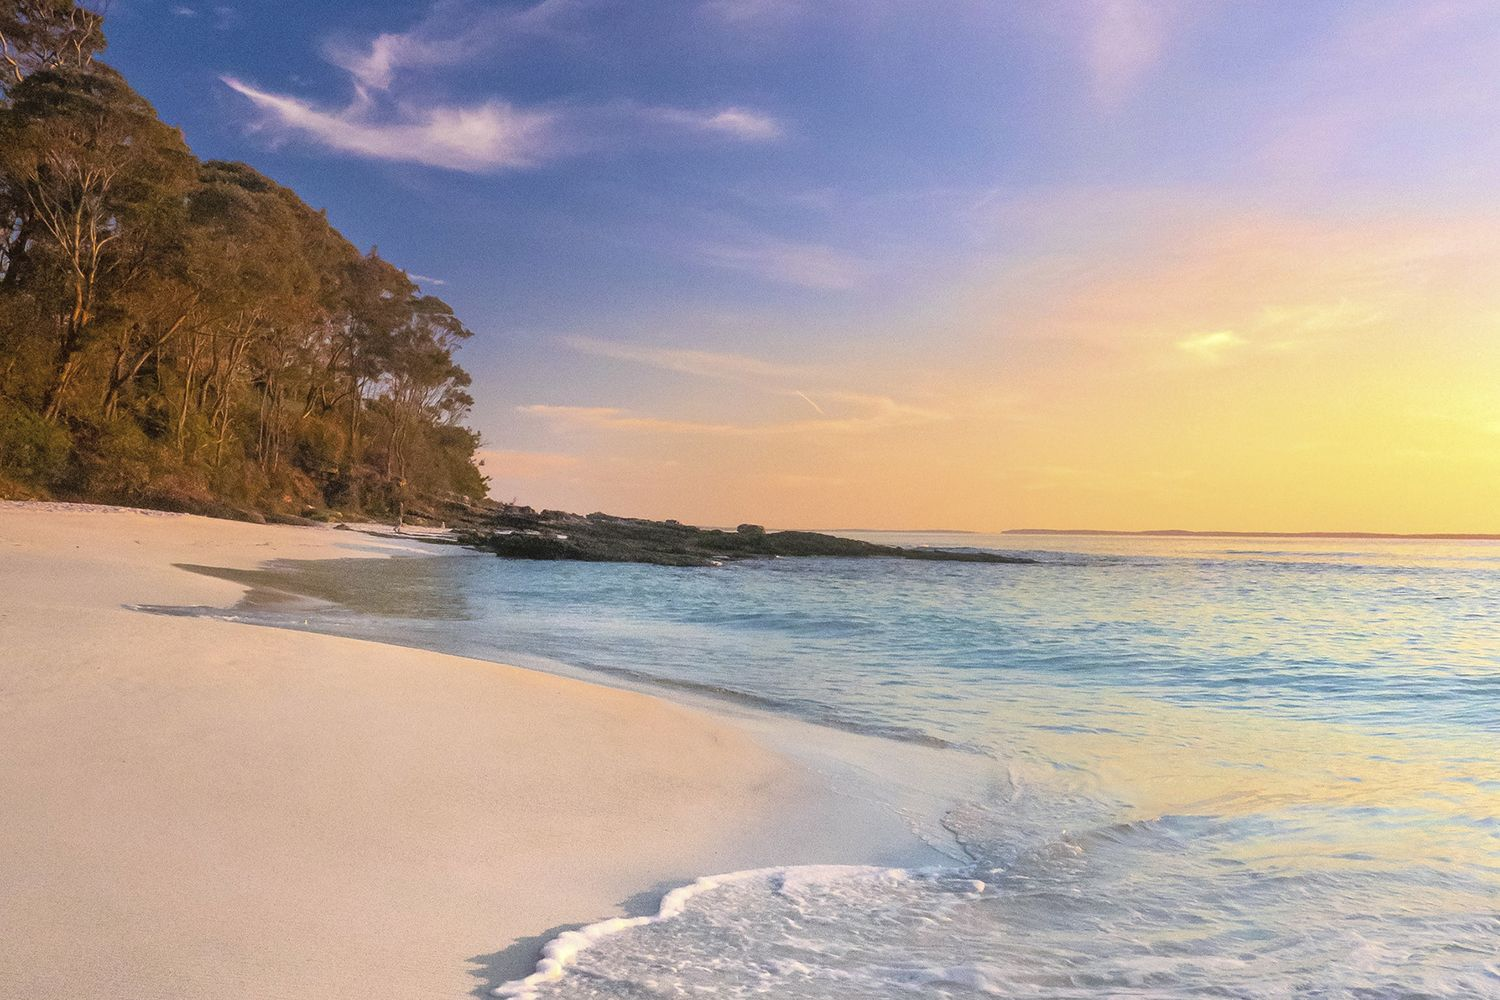 Sunrise on Hyams Beach, Jervis Bay